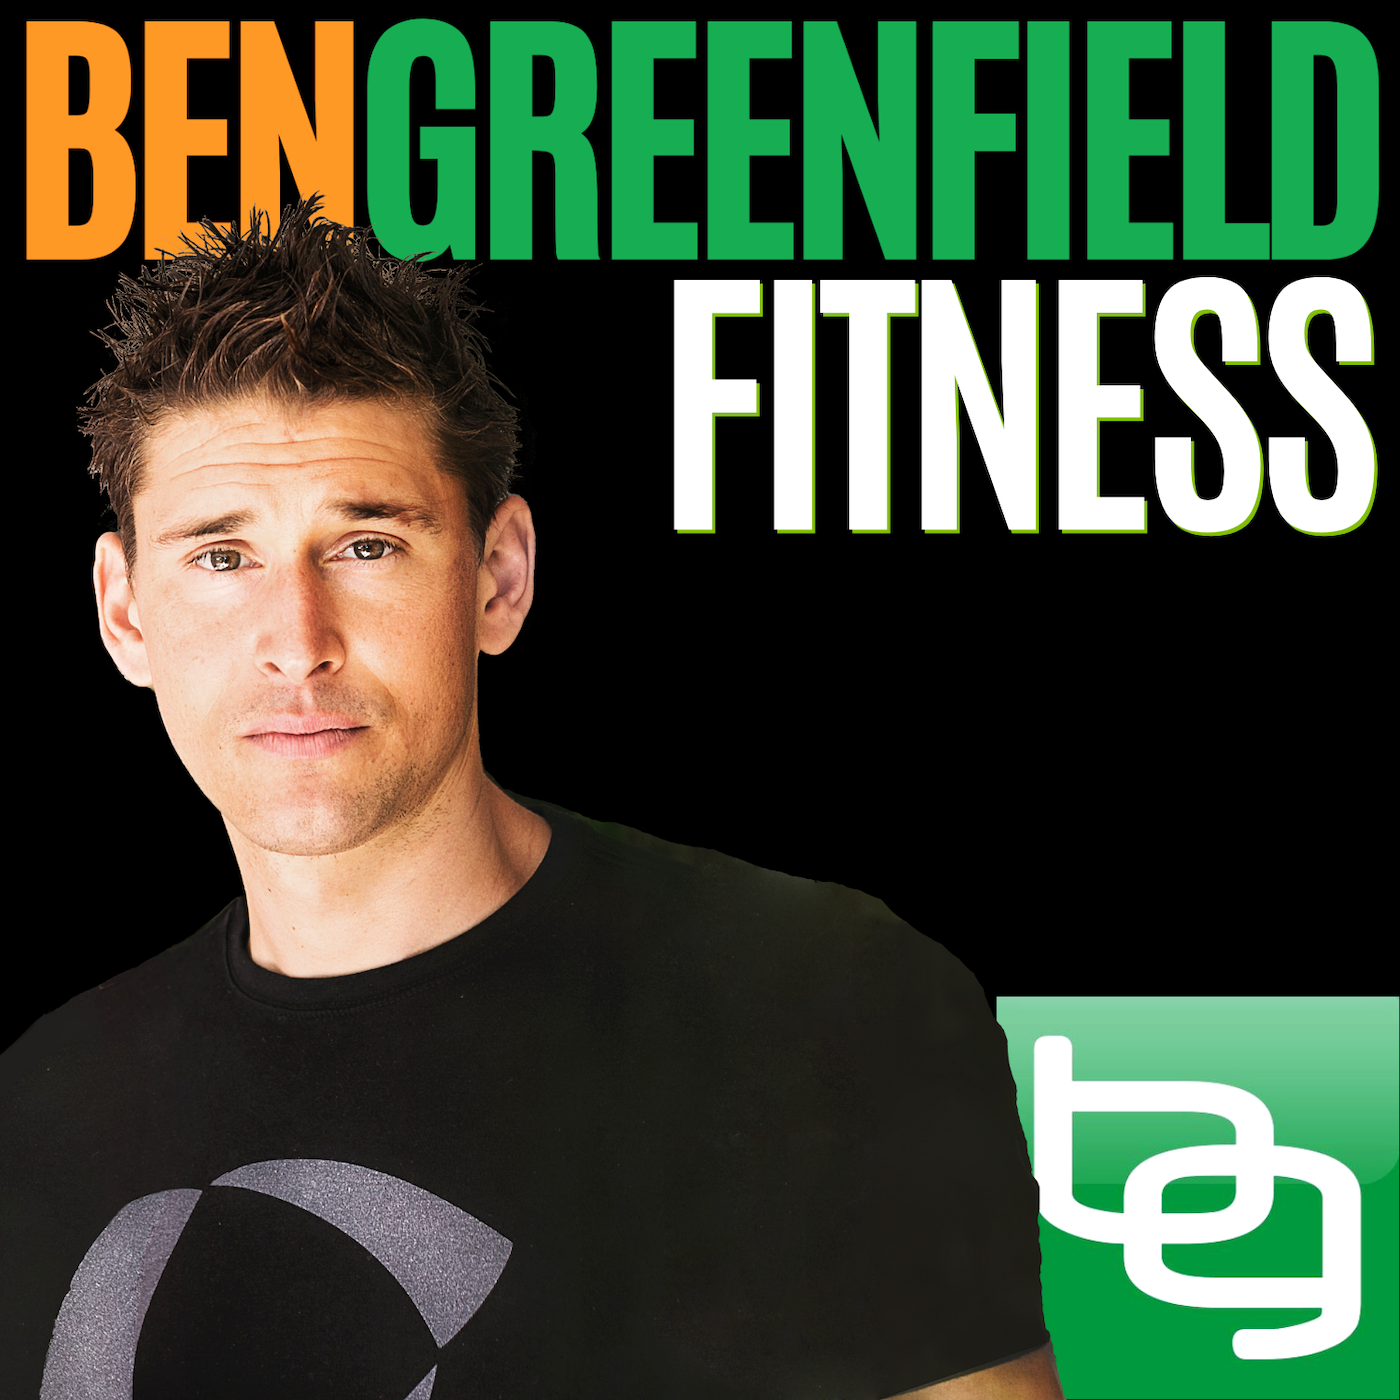 Podcast Cover of Ben Greenfield Fitness